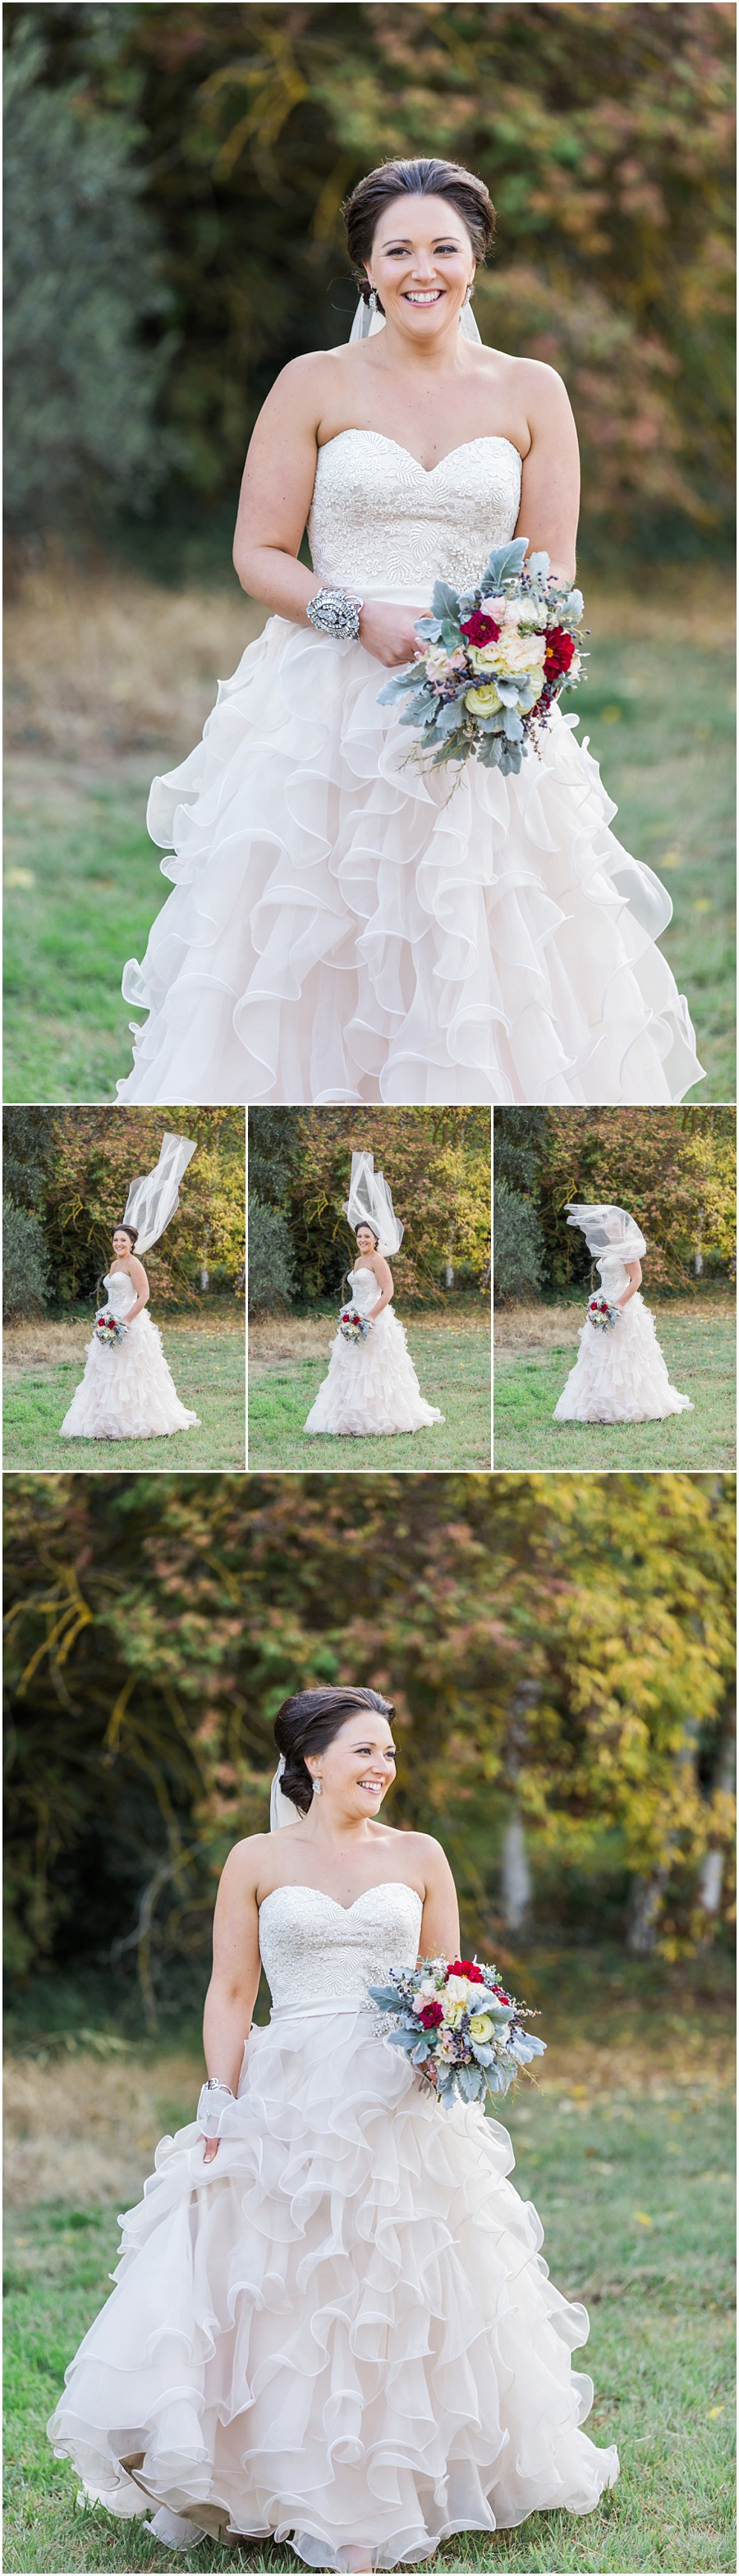 Castlemaine Wedding Photographer_0019